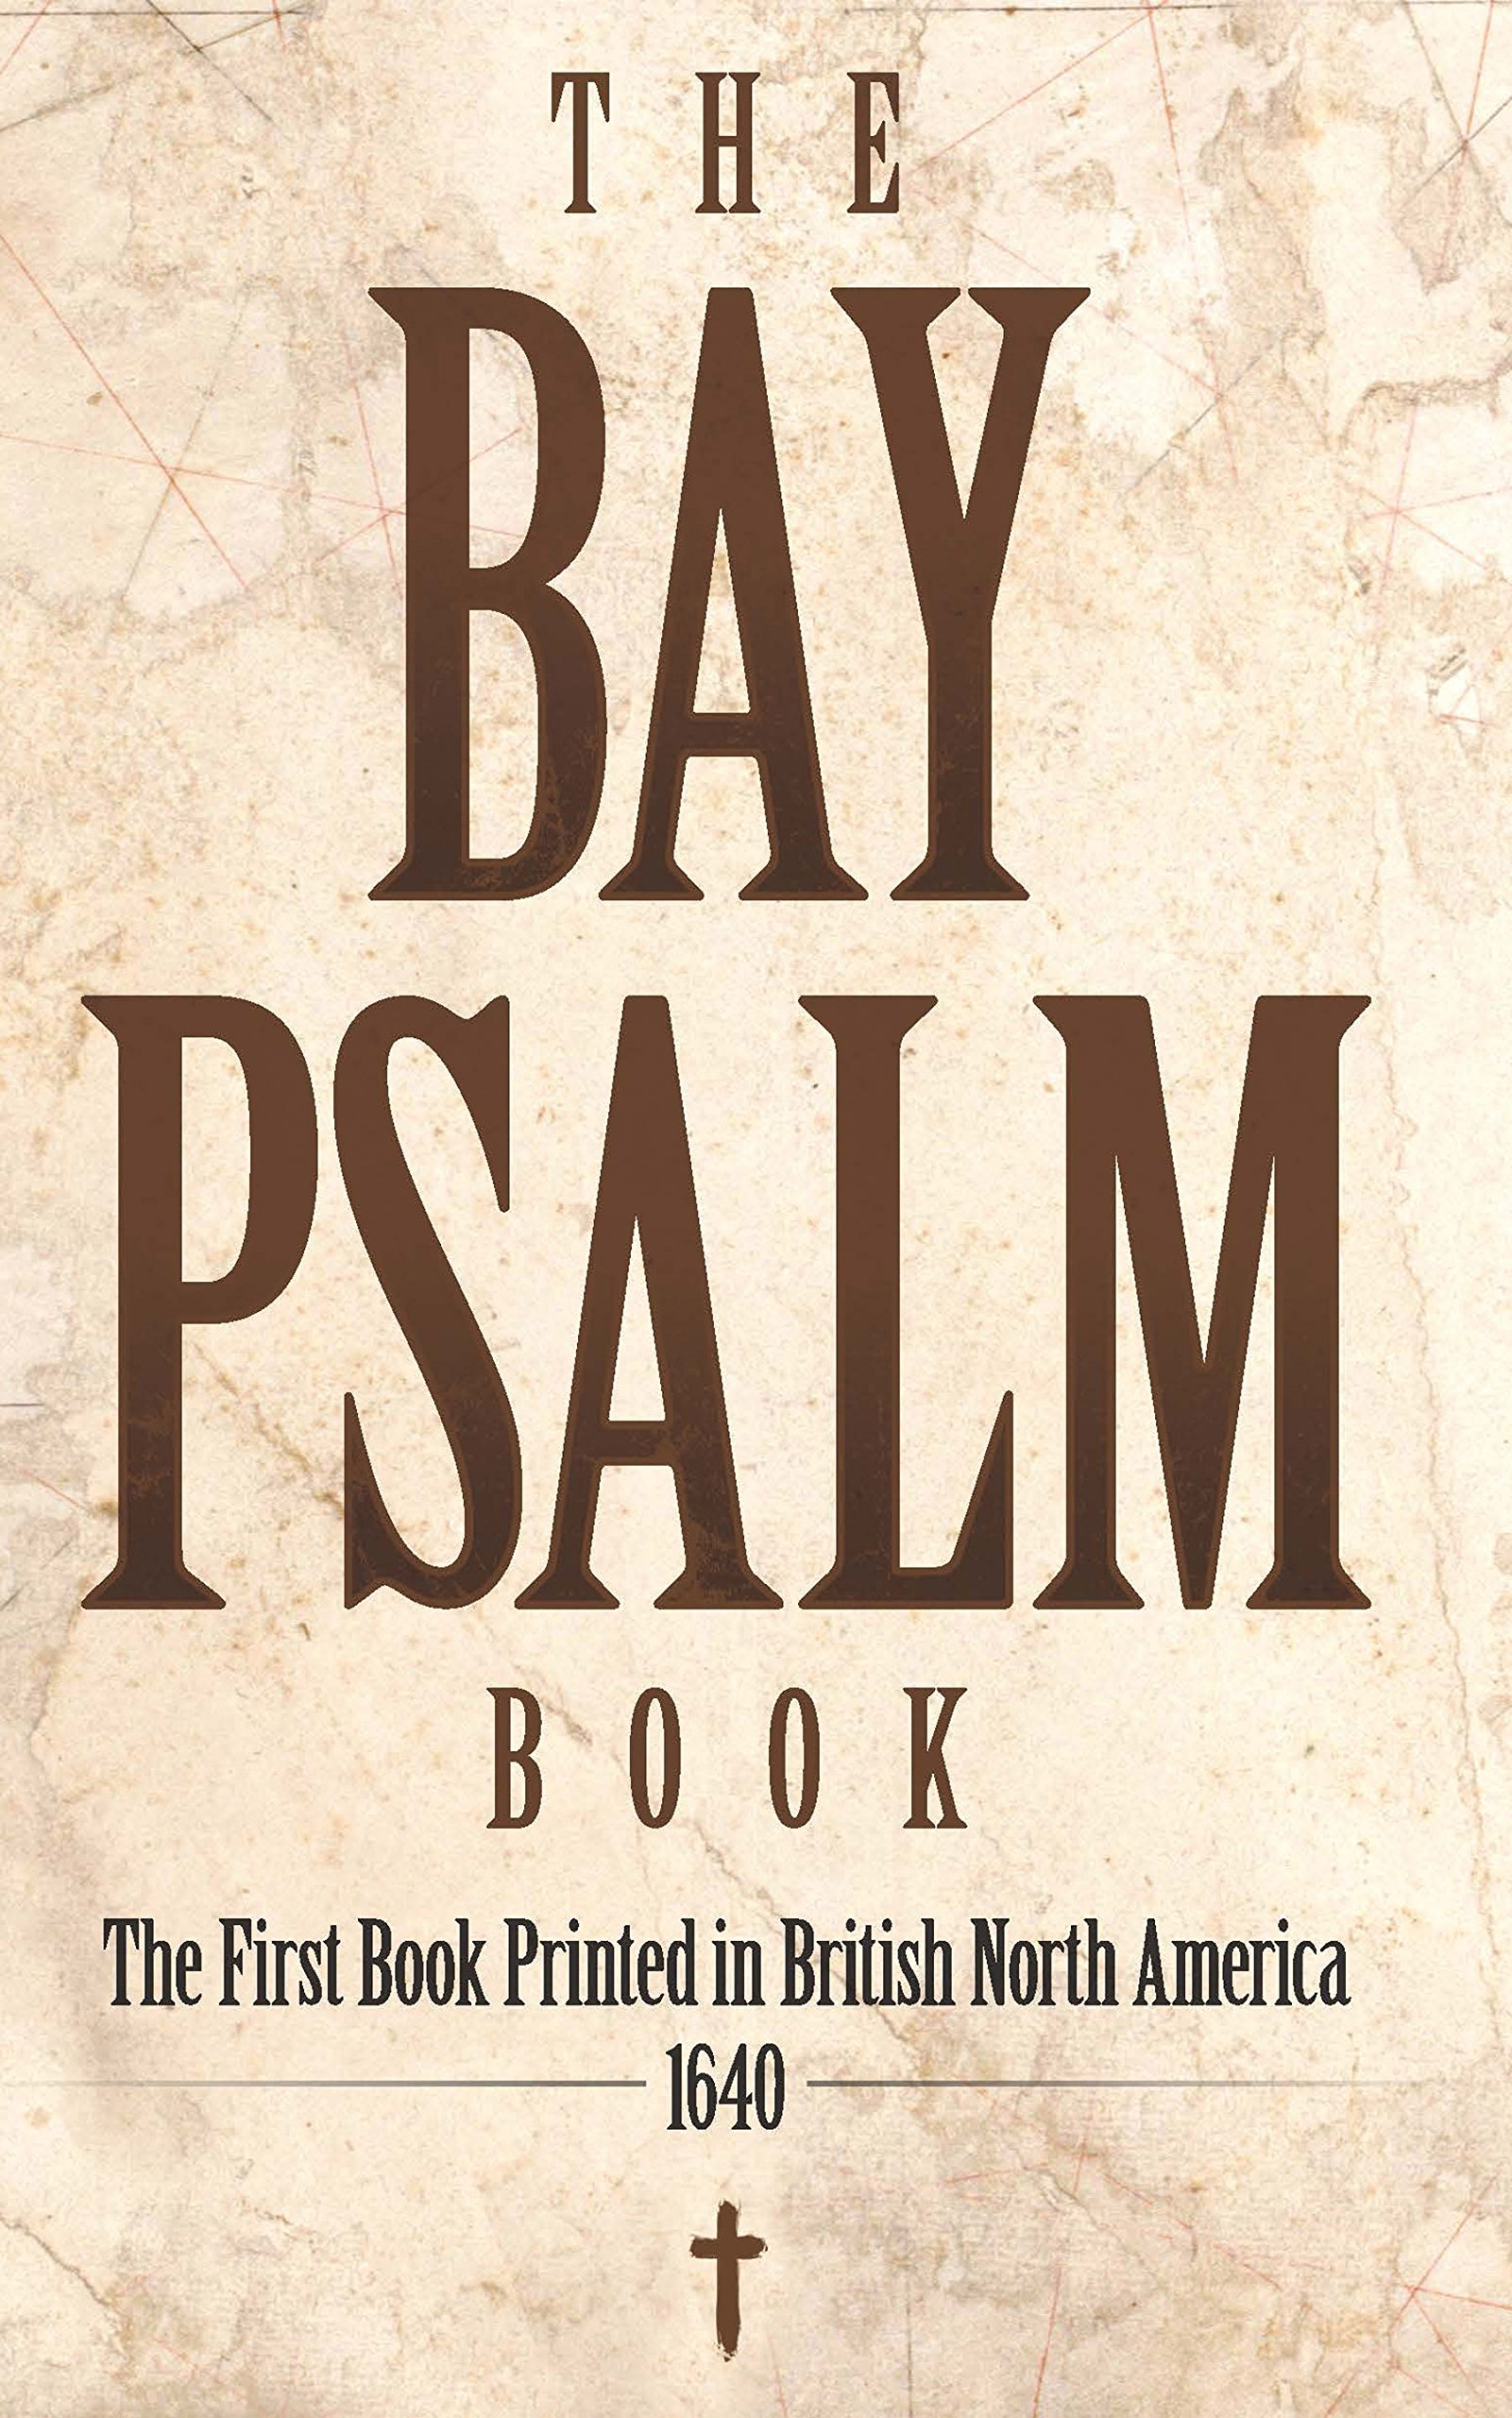 The Bay Psalm Book: The First Book Printed in British North America, 1640 PDF